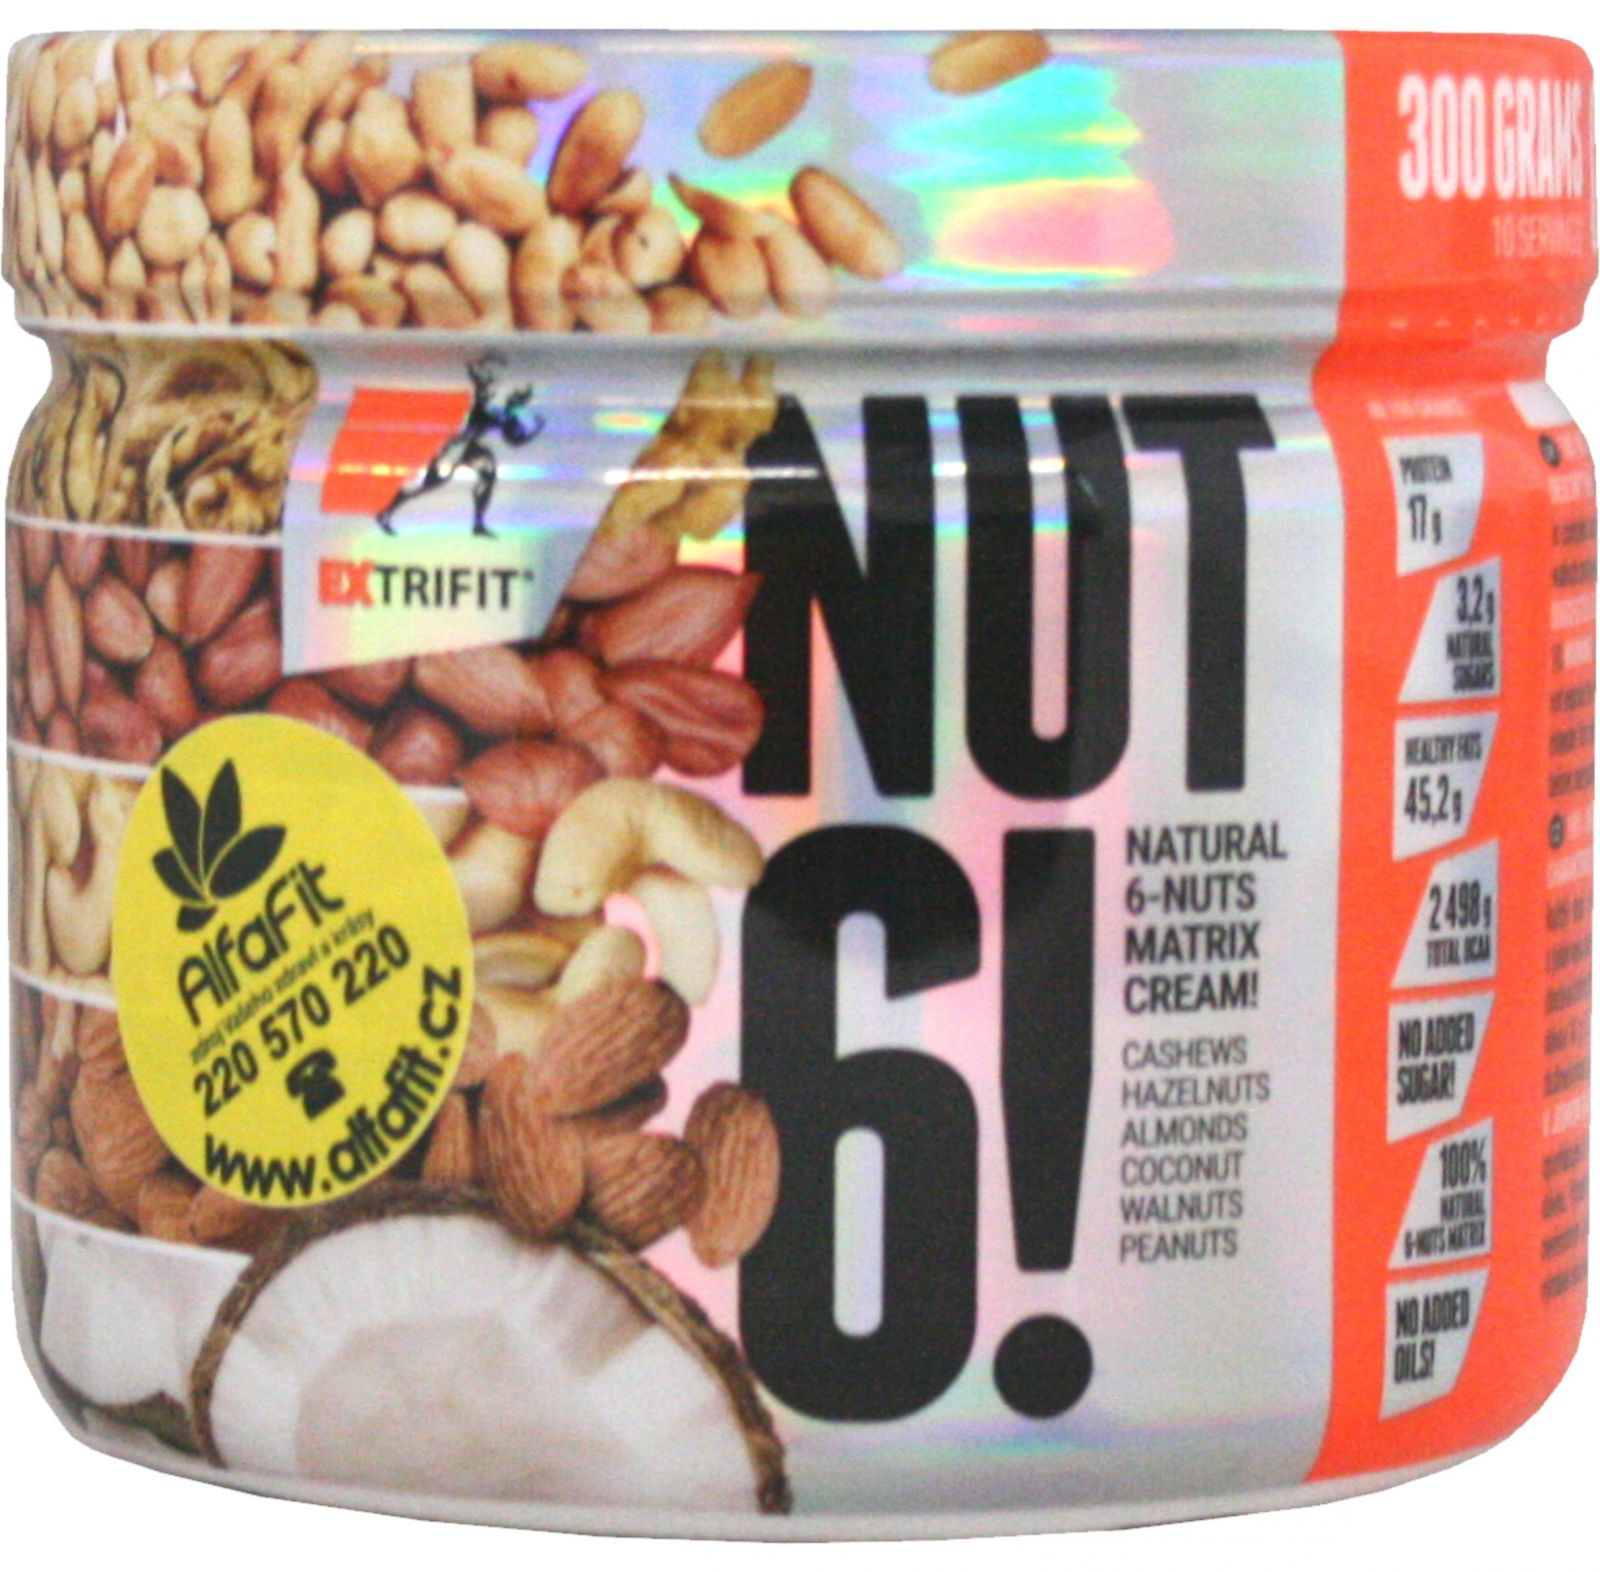 Extrifit nut 6! natural